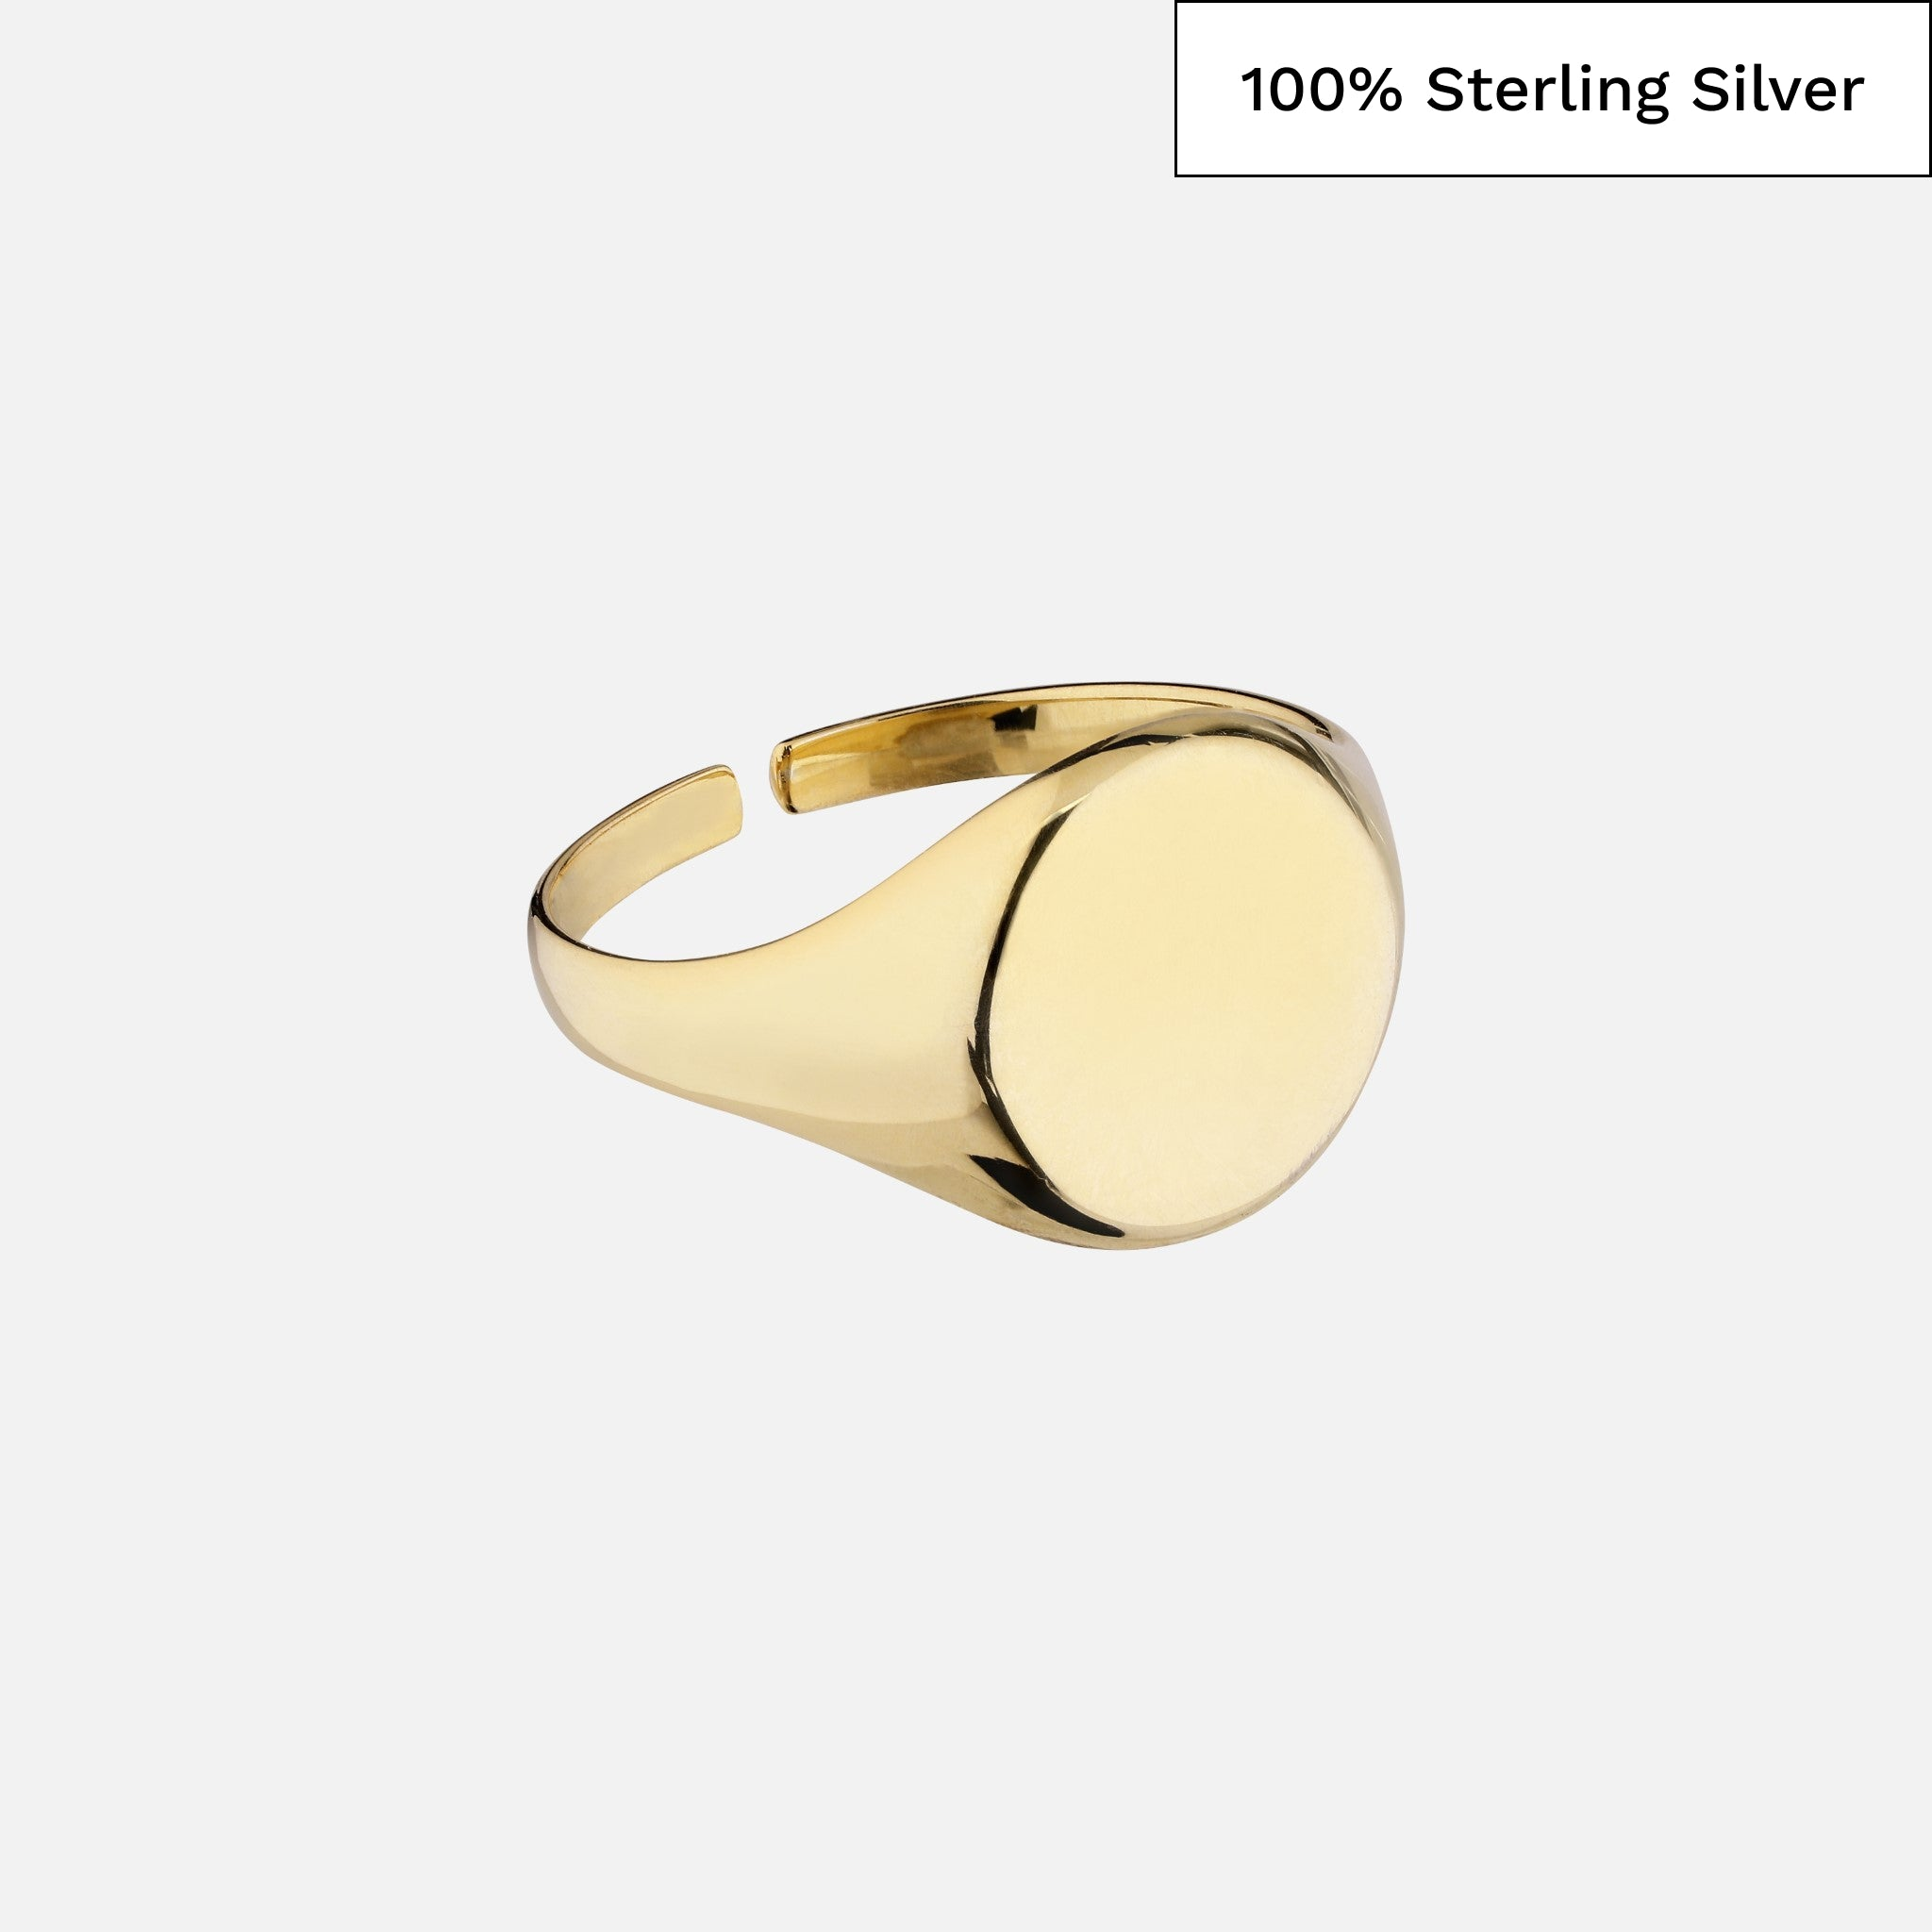 North North North 14k gold plated signet ring in 100% sterling silver | Clausen Ring Gold